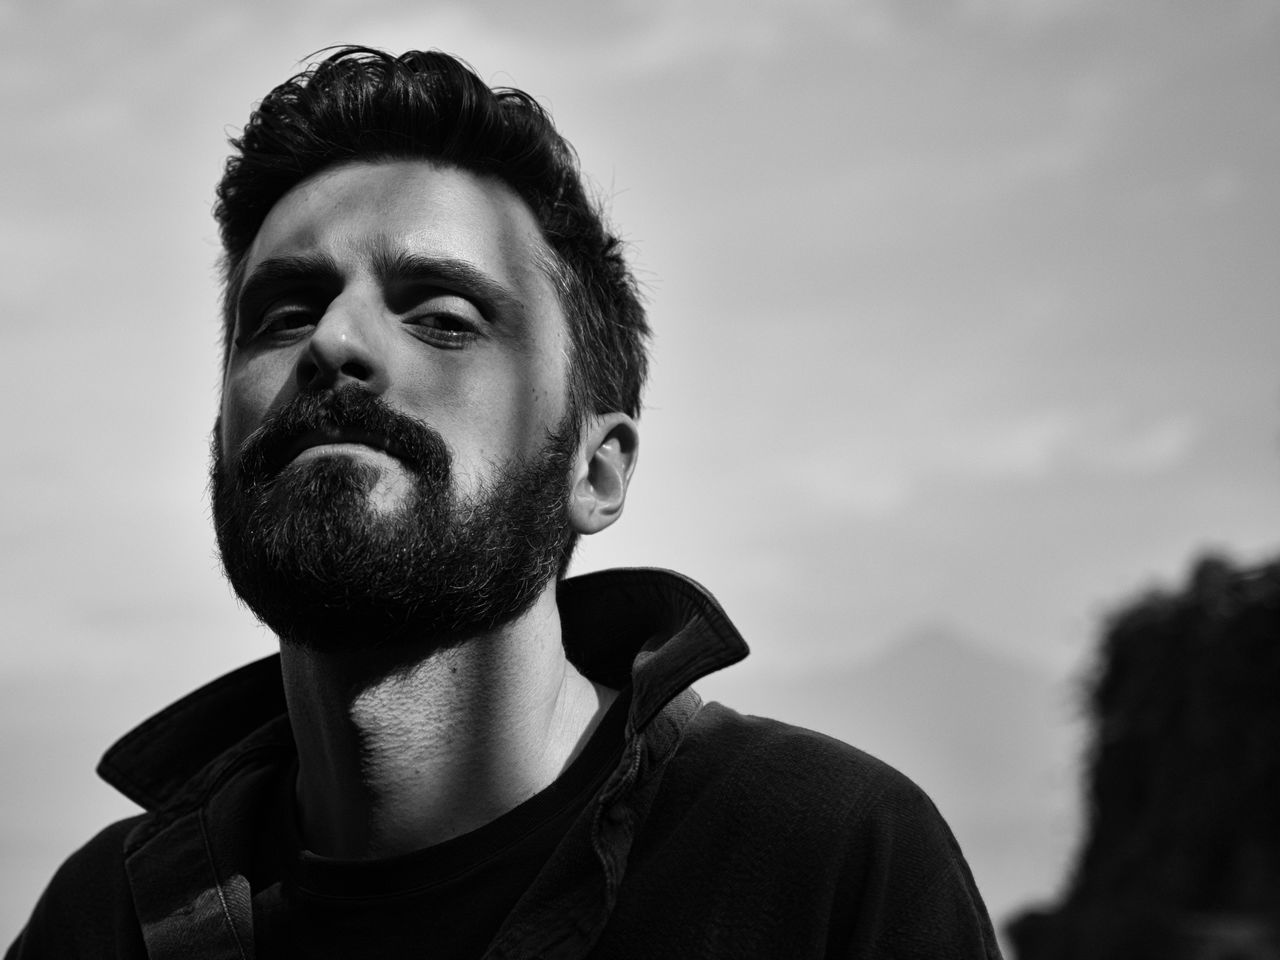 Andrea Adult Adults Only Beard Black & White Black And White Blackandwhite Blackandwhite Photography Boy Close-up Cloud - Sky Day Headshot Lines Low Angle View Man Nature One Man Only One Person Only Men Outdoors People Portrait Real People Sky Young Adult Welcome To Black